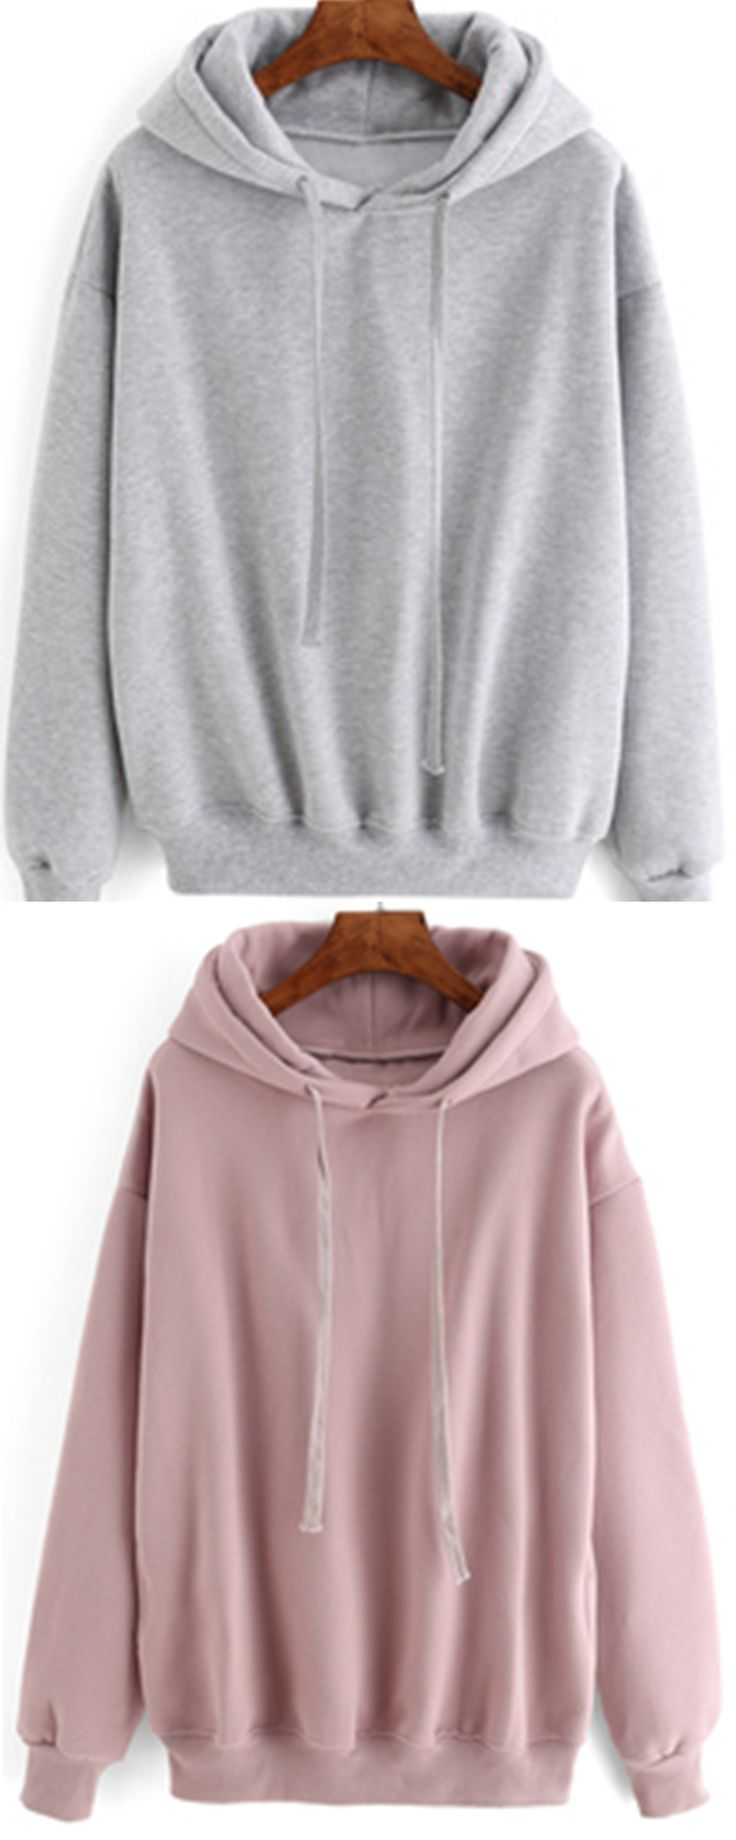 Best 25  Plain sweatshirts ideas on Pinterest | Birthday status ...